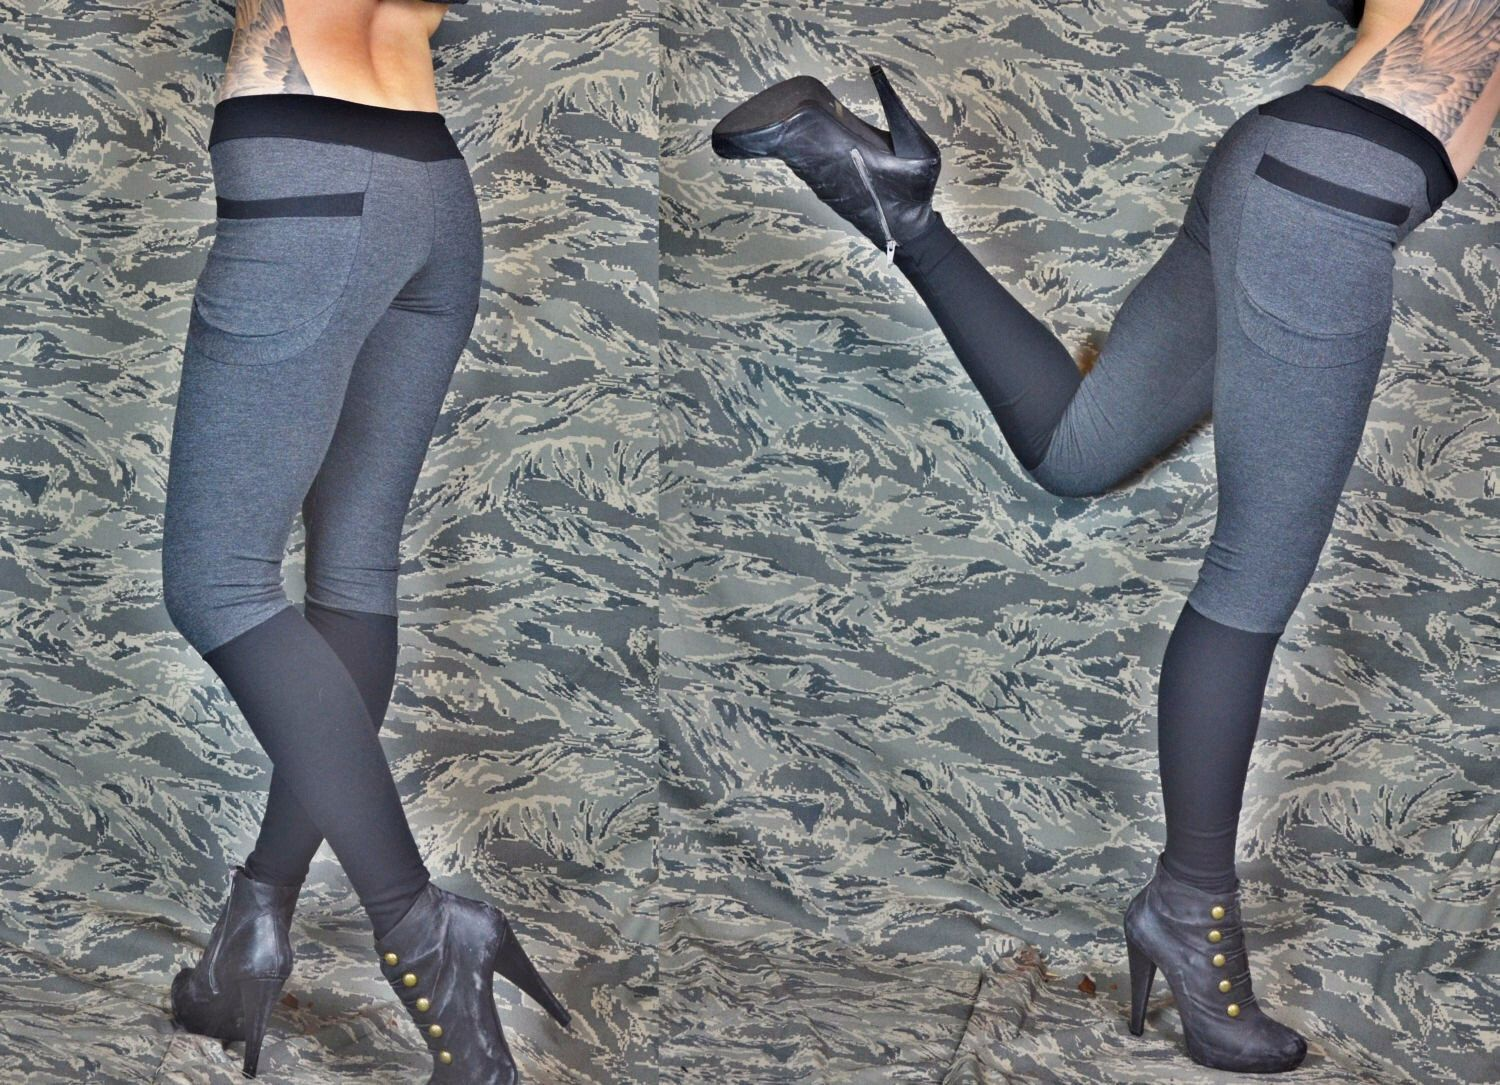 Eco  winter yoga pants with pockets in bamboo- dark gray/black. $90.00, via Etsy.